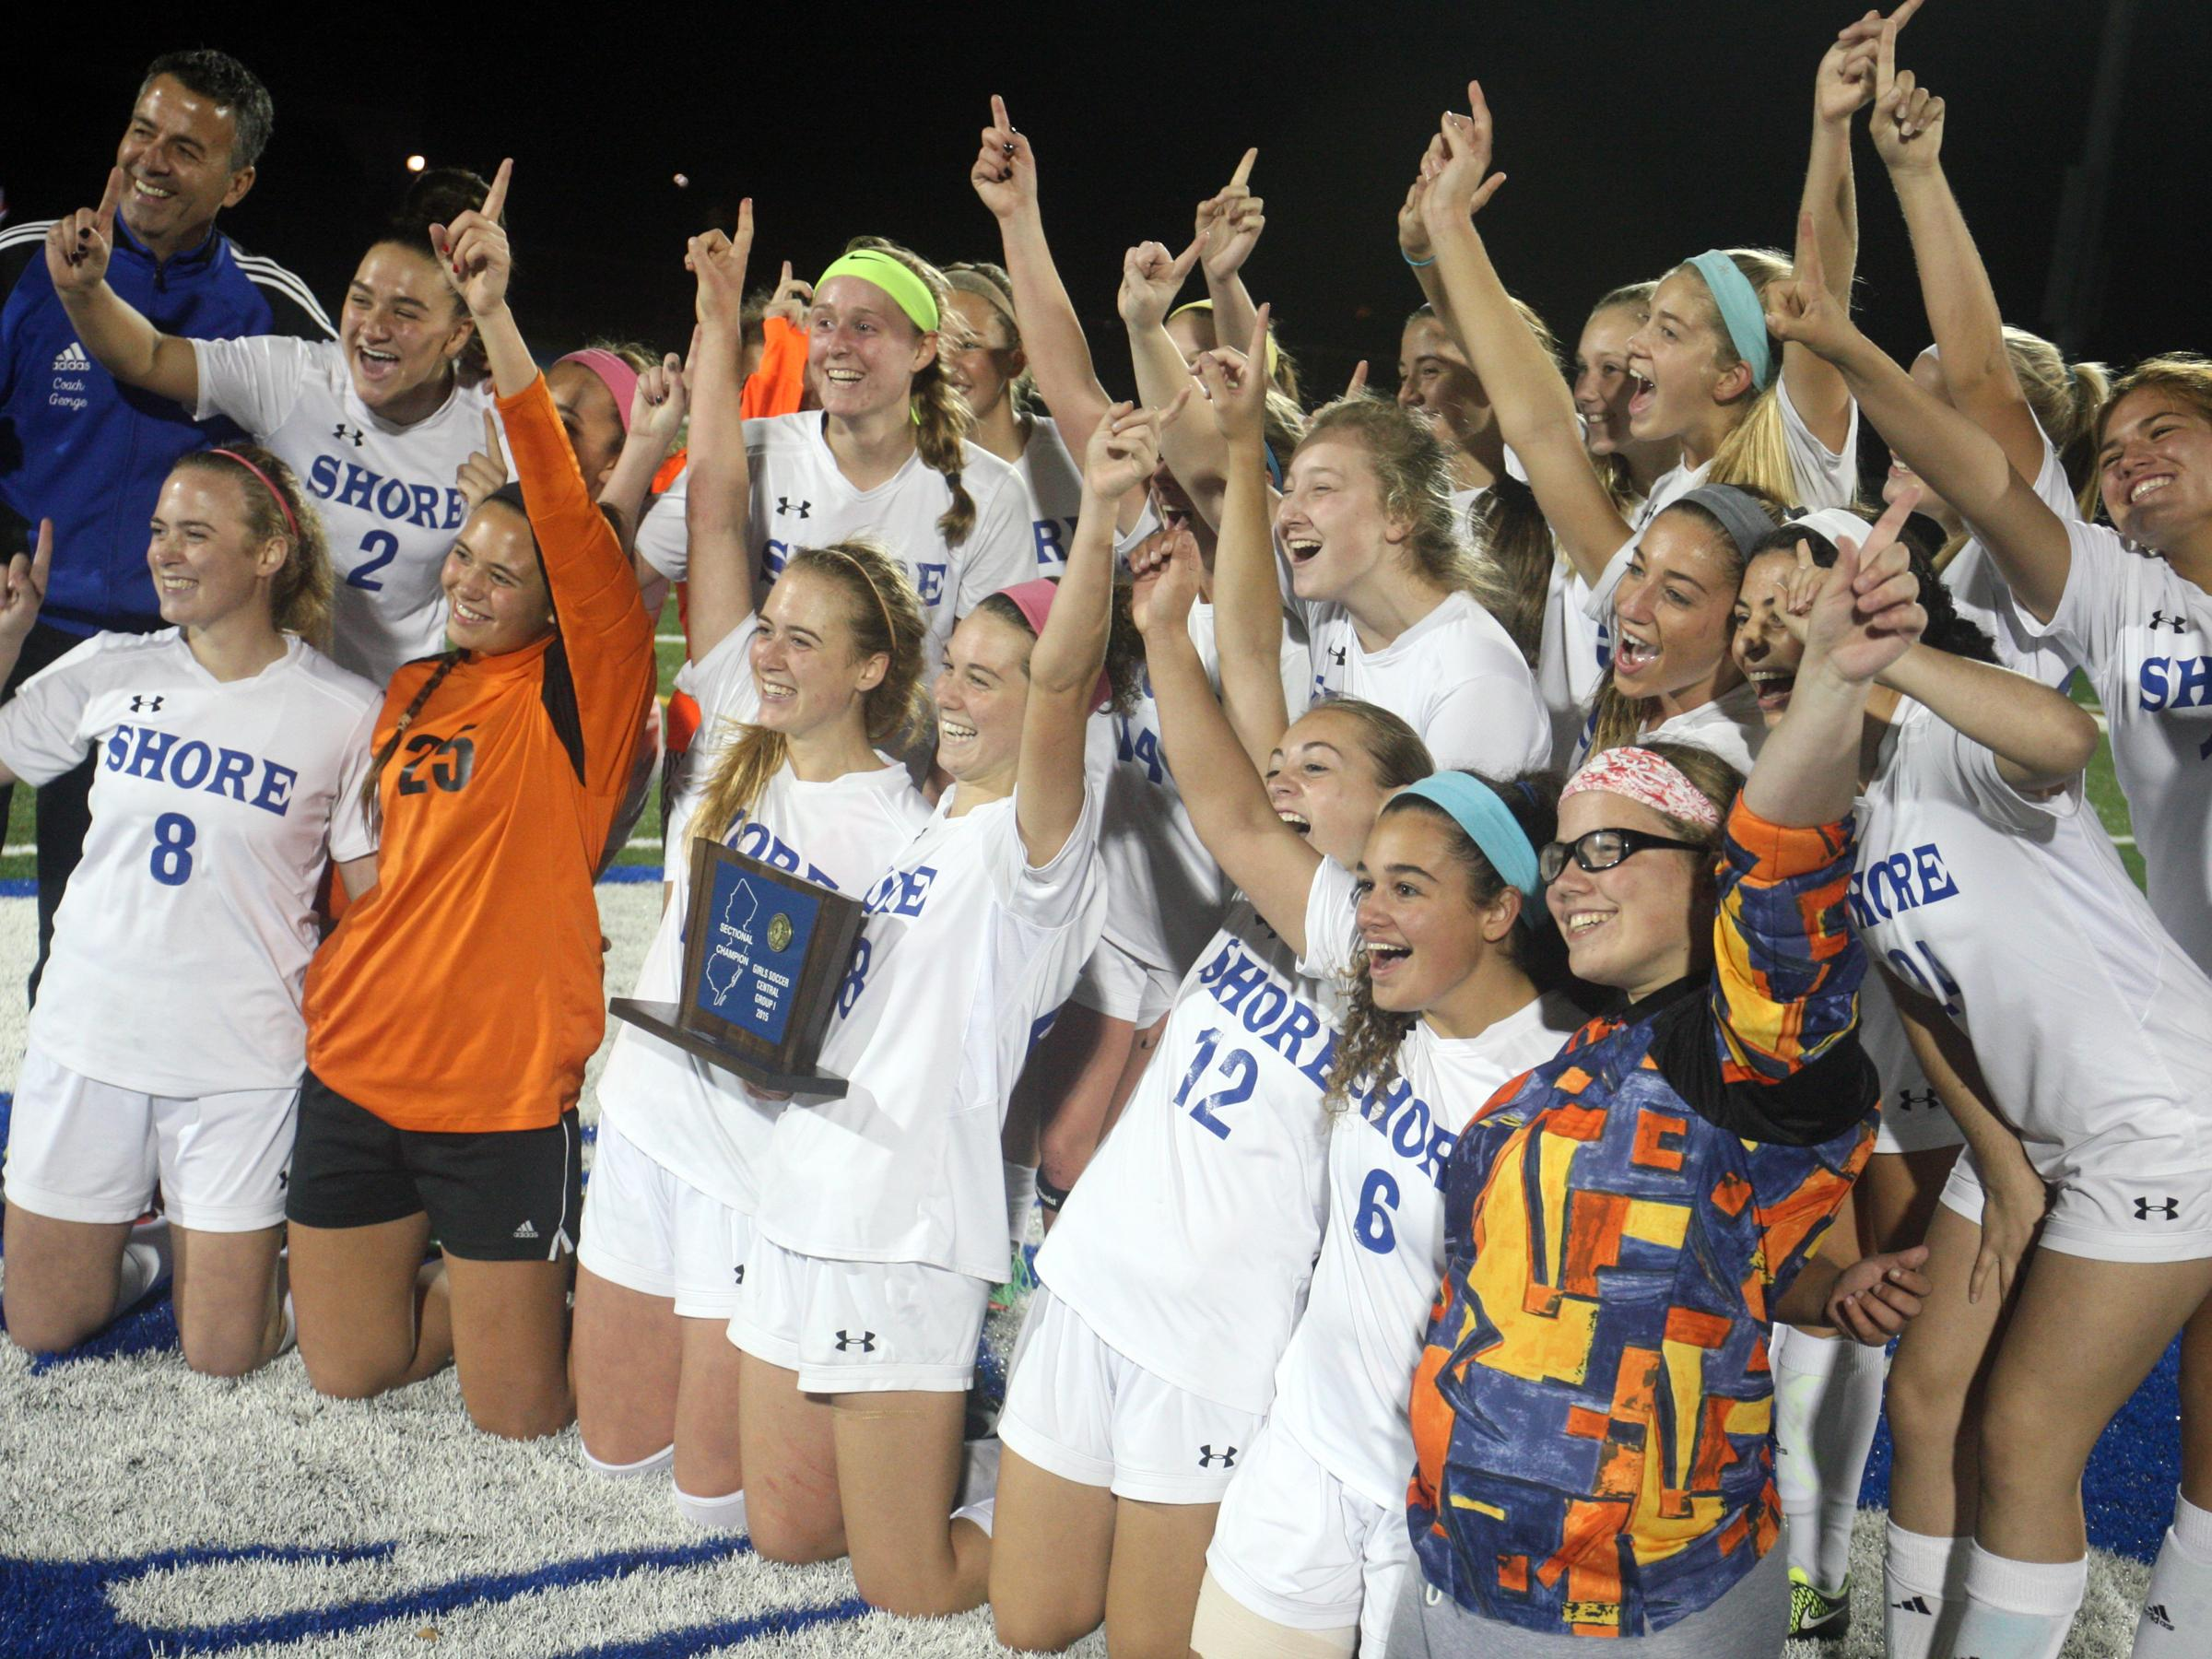 Shore Regional celebrates the 4-0 win over Metuchen in the Central Group I girls soccer sectional final, Thursday, November 12, 2015, in West Long Branch.